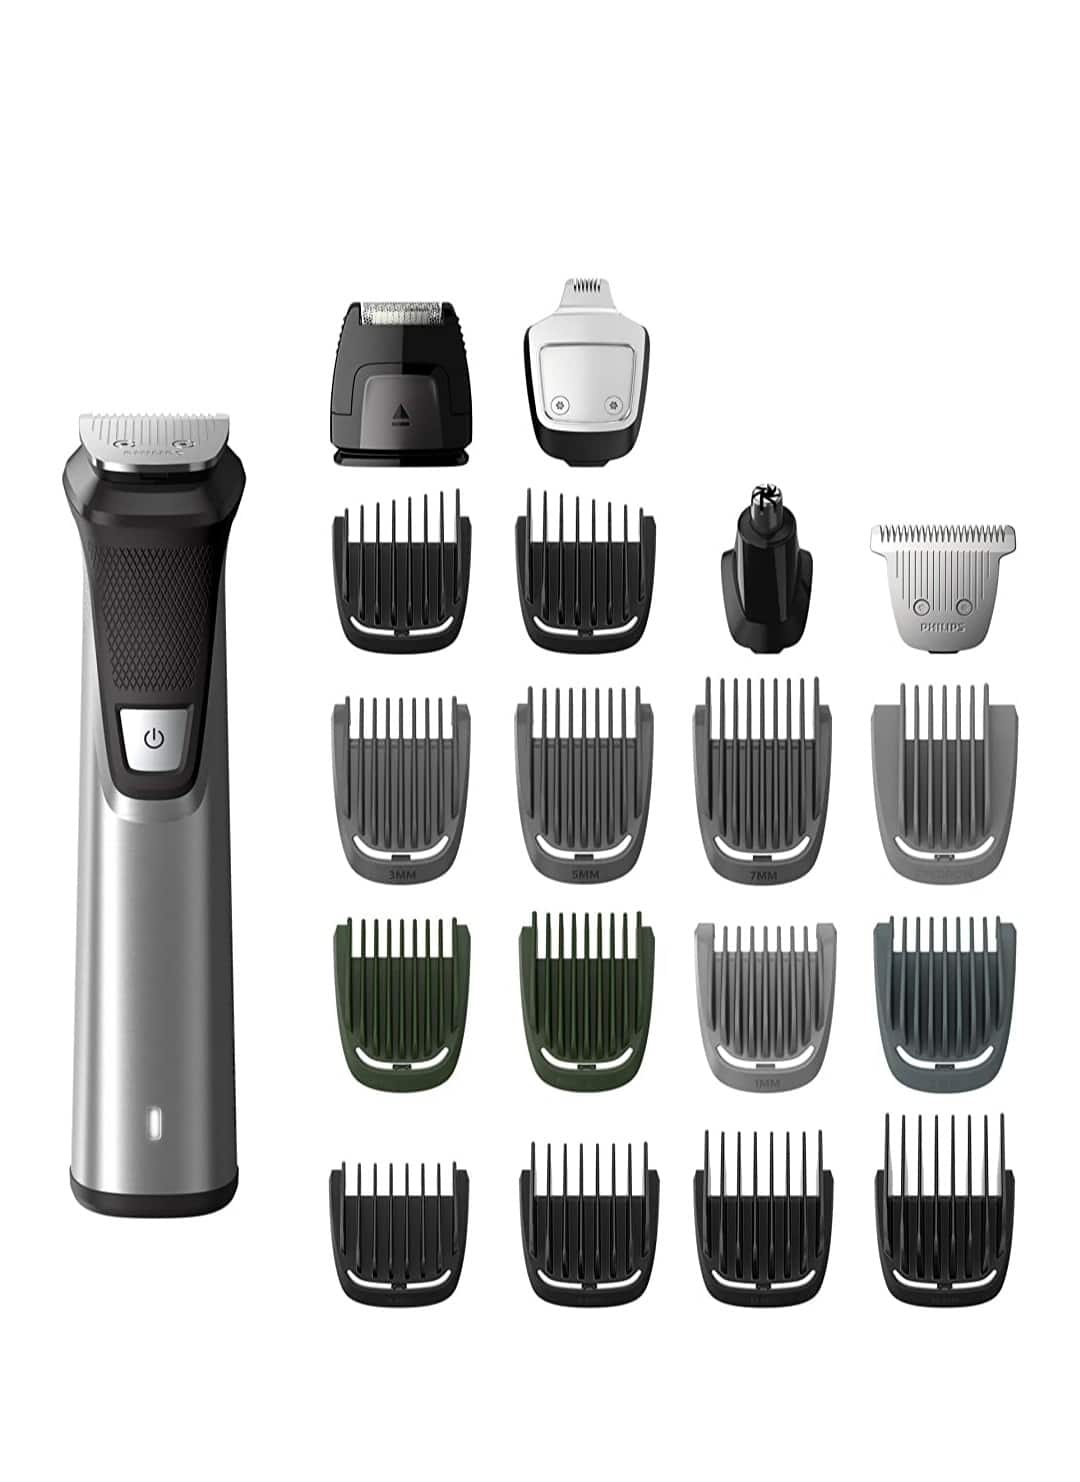 Philips Norelco MG7750/49 Multigroom Series 7000 $44.95